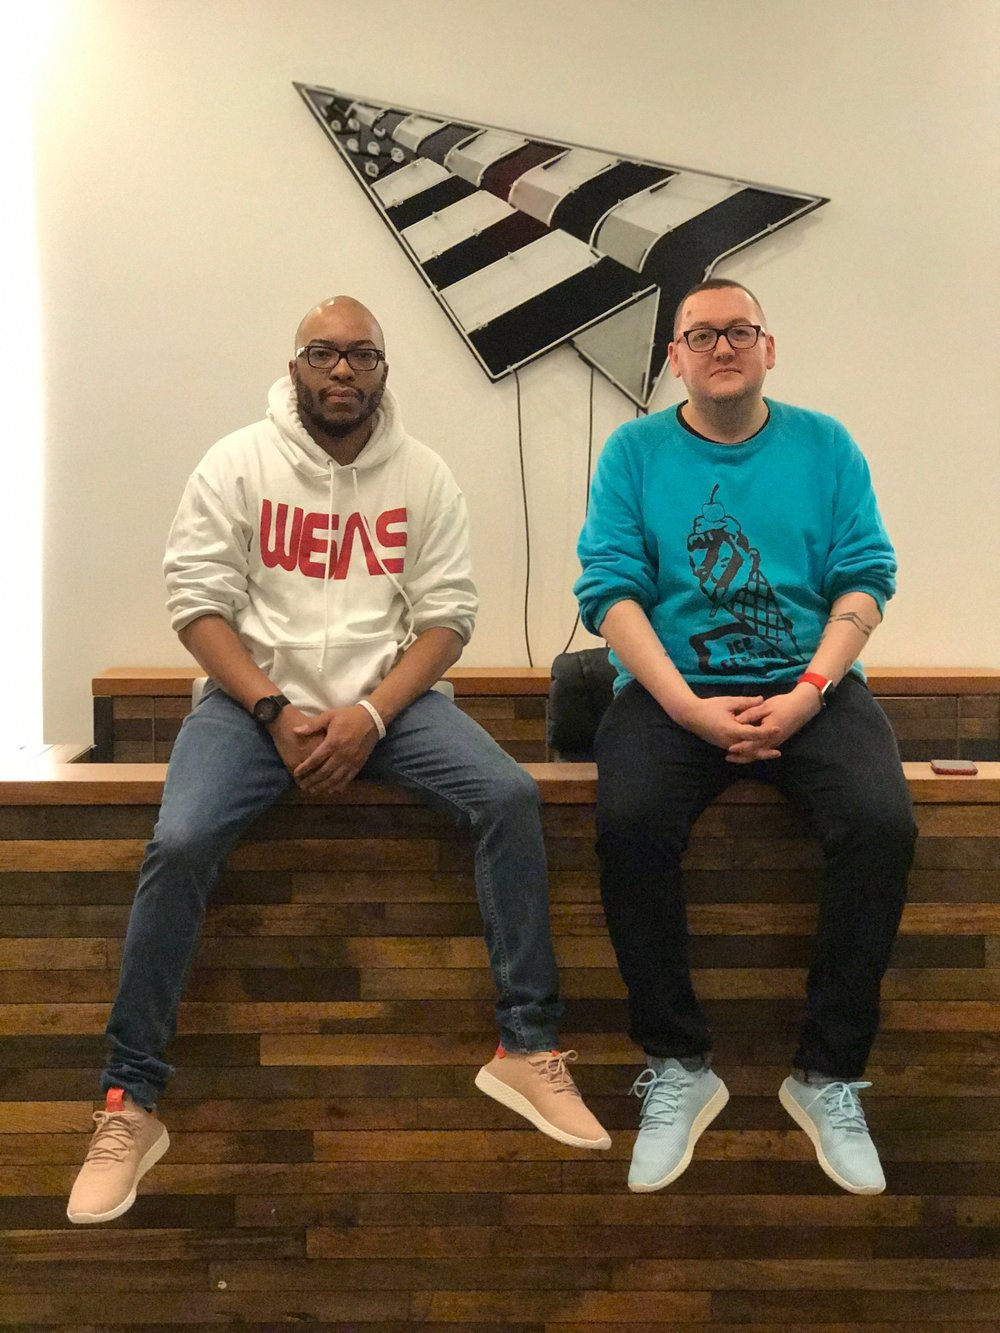 David and Steve @ Roc Nation / Tidal, NY.  Image by Evan Pierce